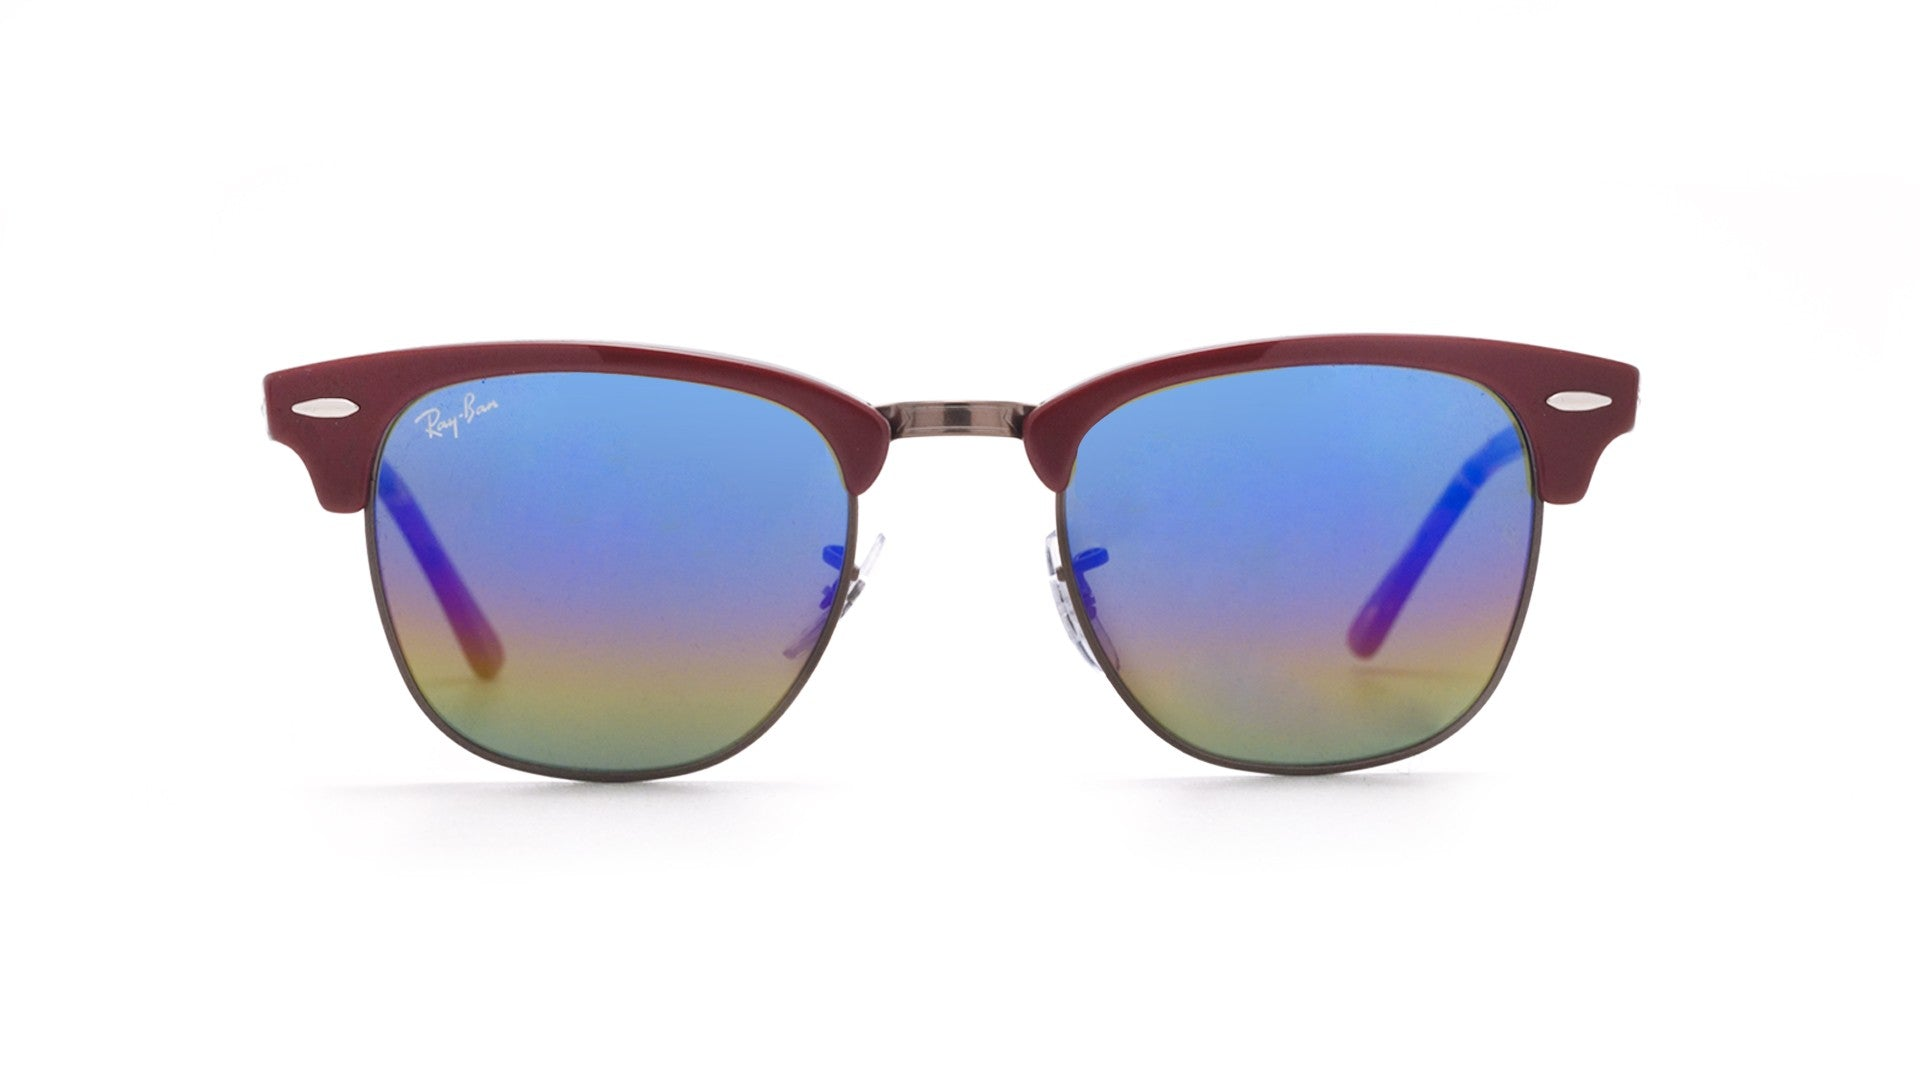 Ray-Ban Clubmaster Sunglasses (RB3016) - 3 Colors to Choose From!